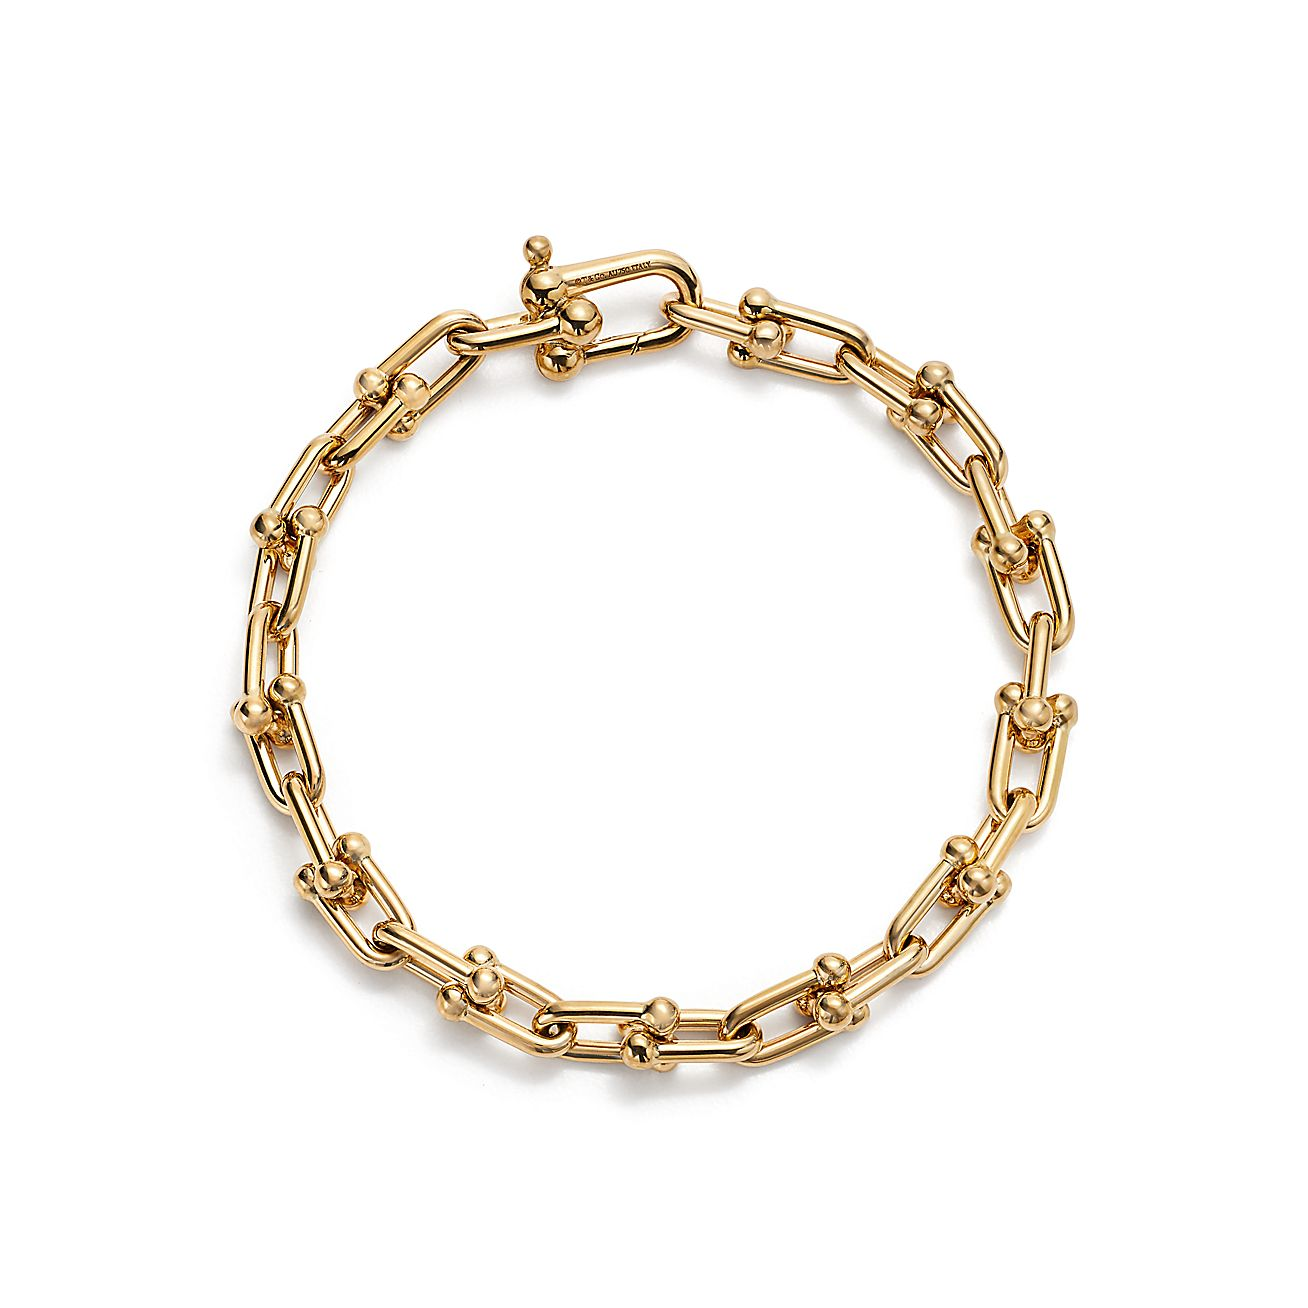 Tiffany Gold Bracelets Best Bracelets